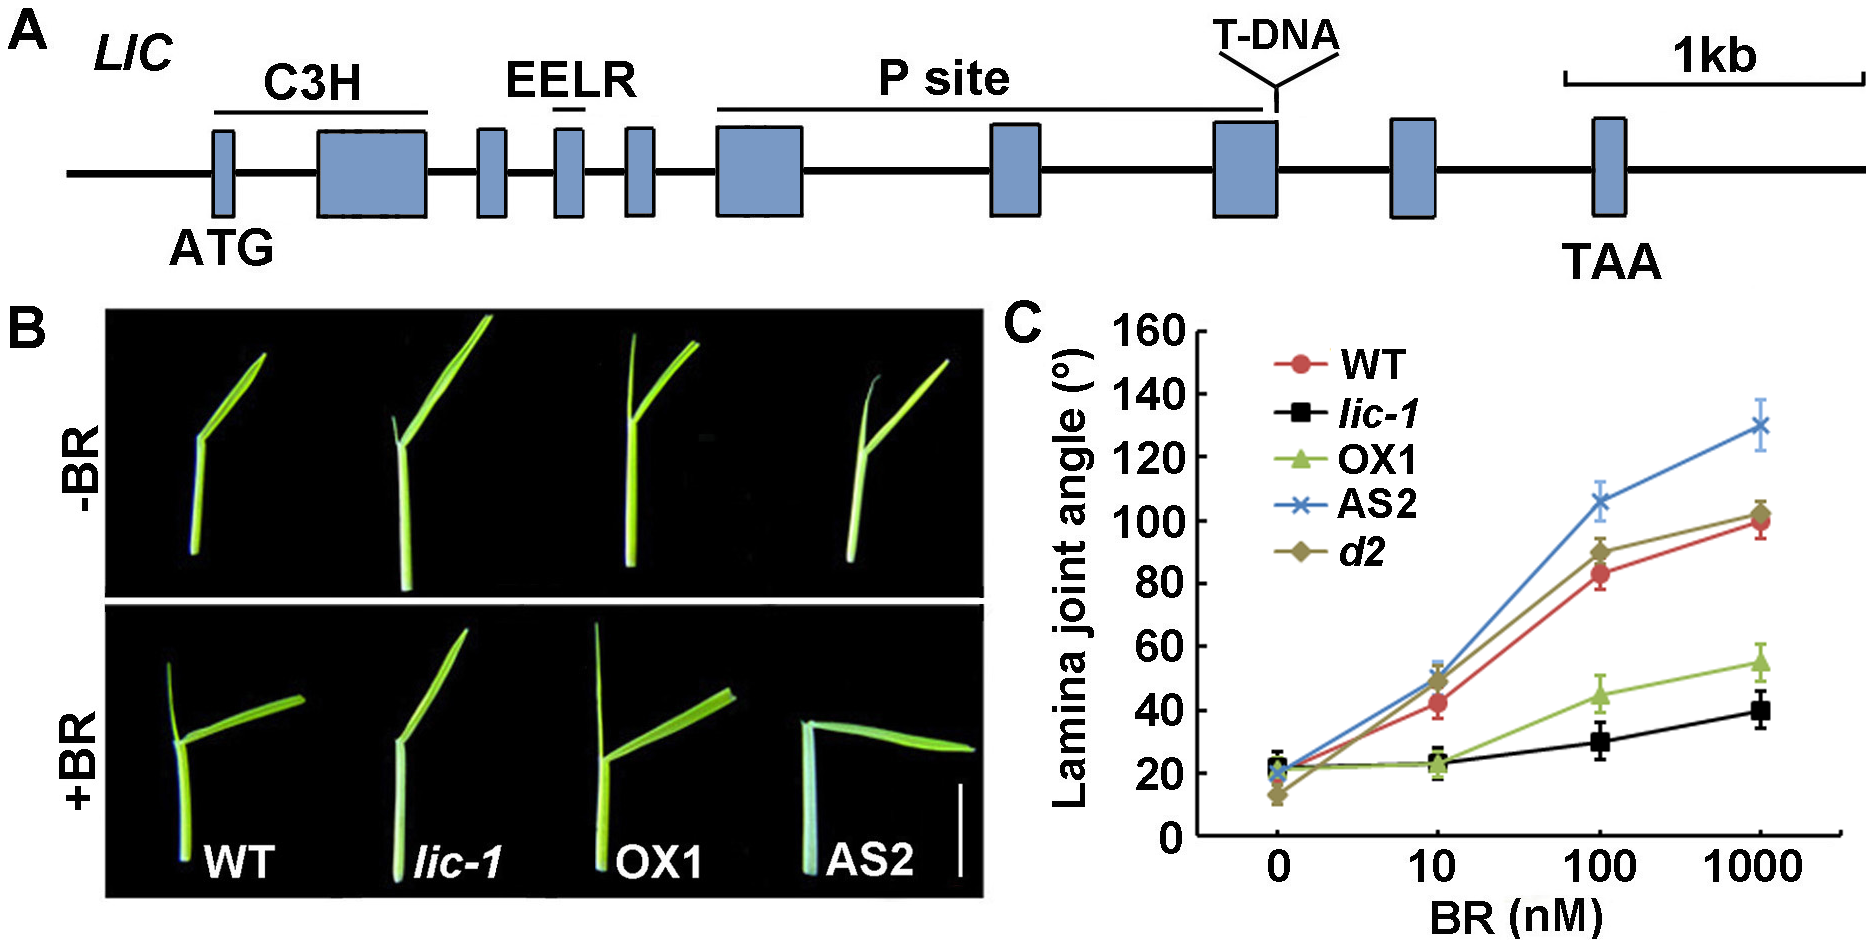 LIC negatively regulates BR signaling.